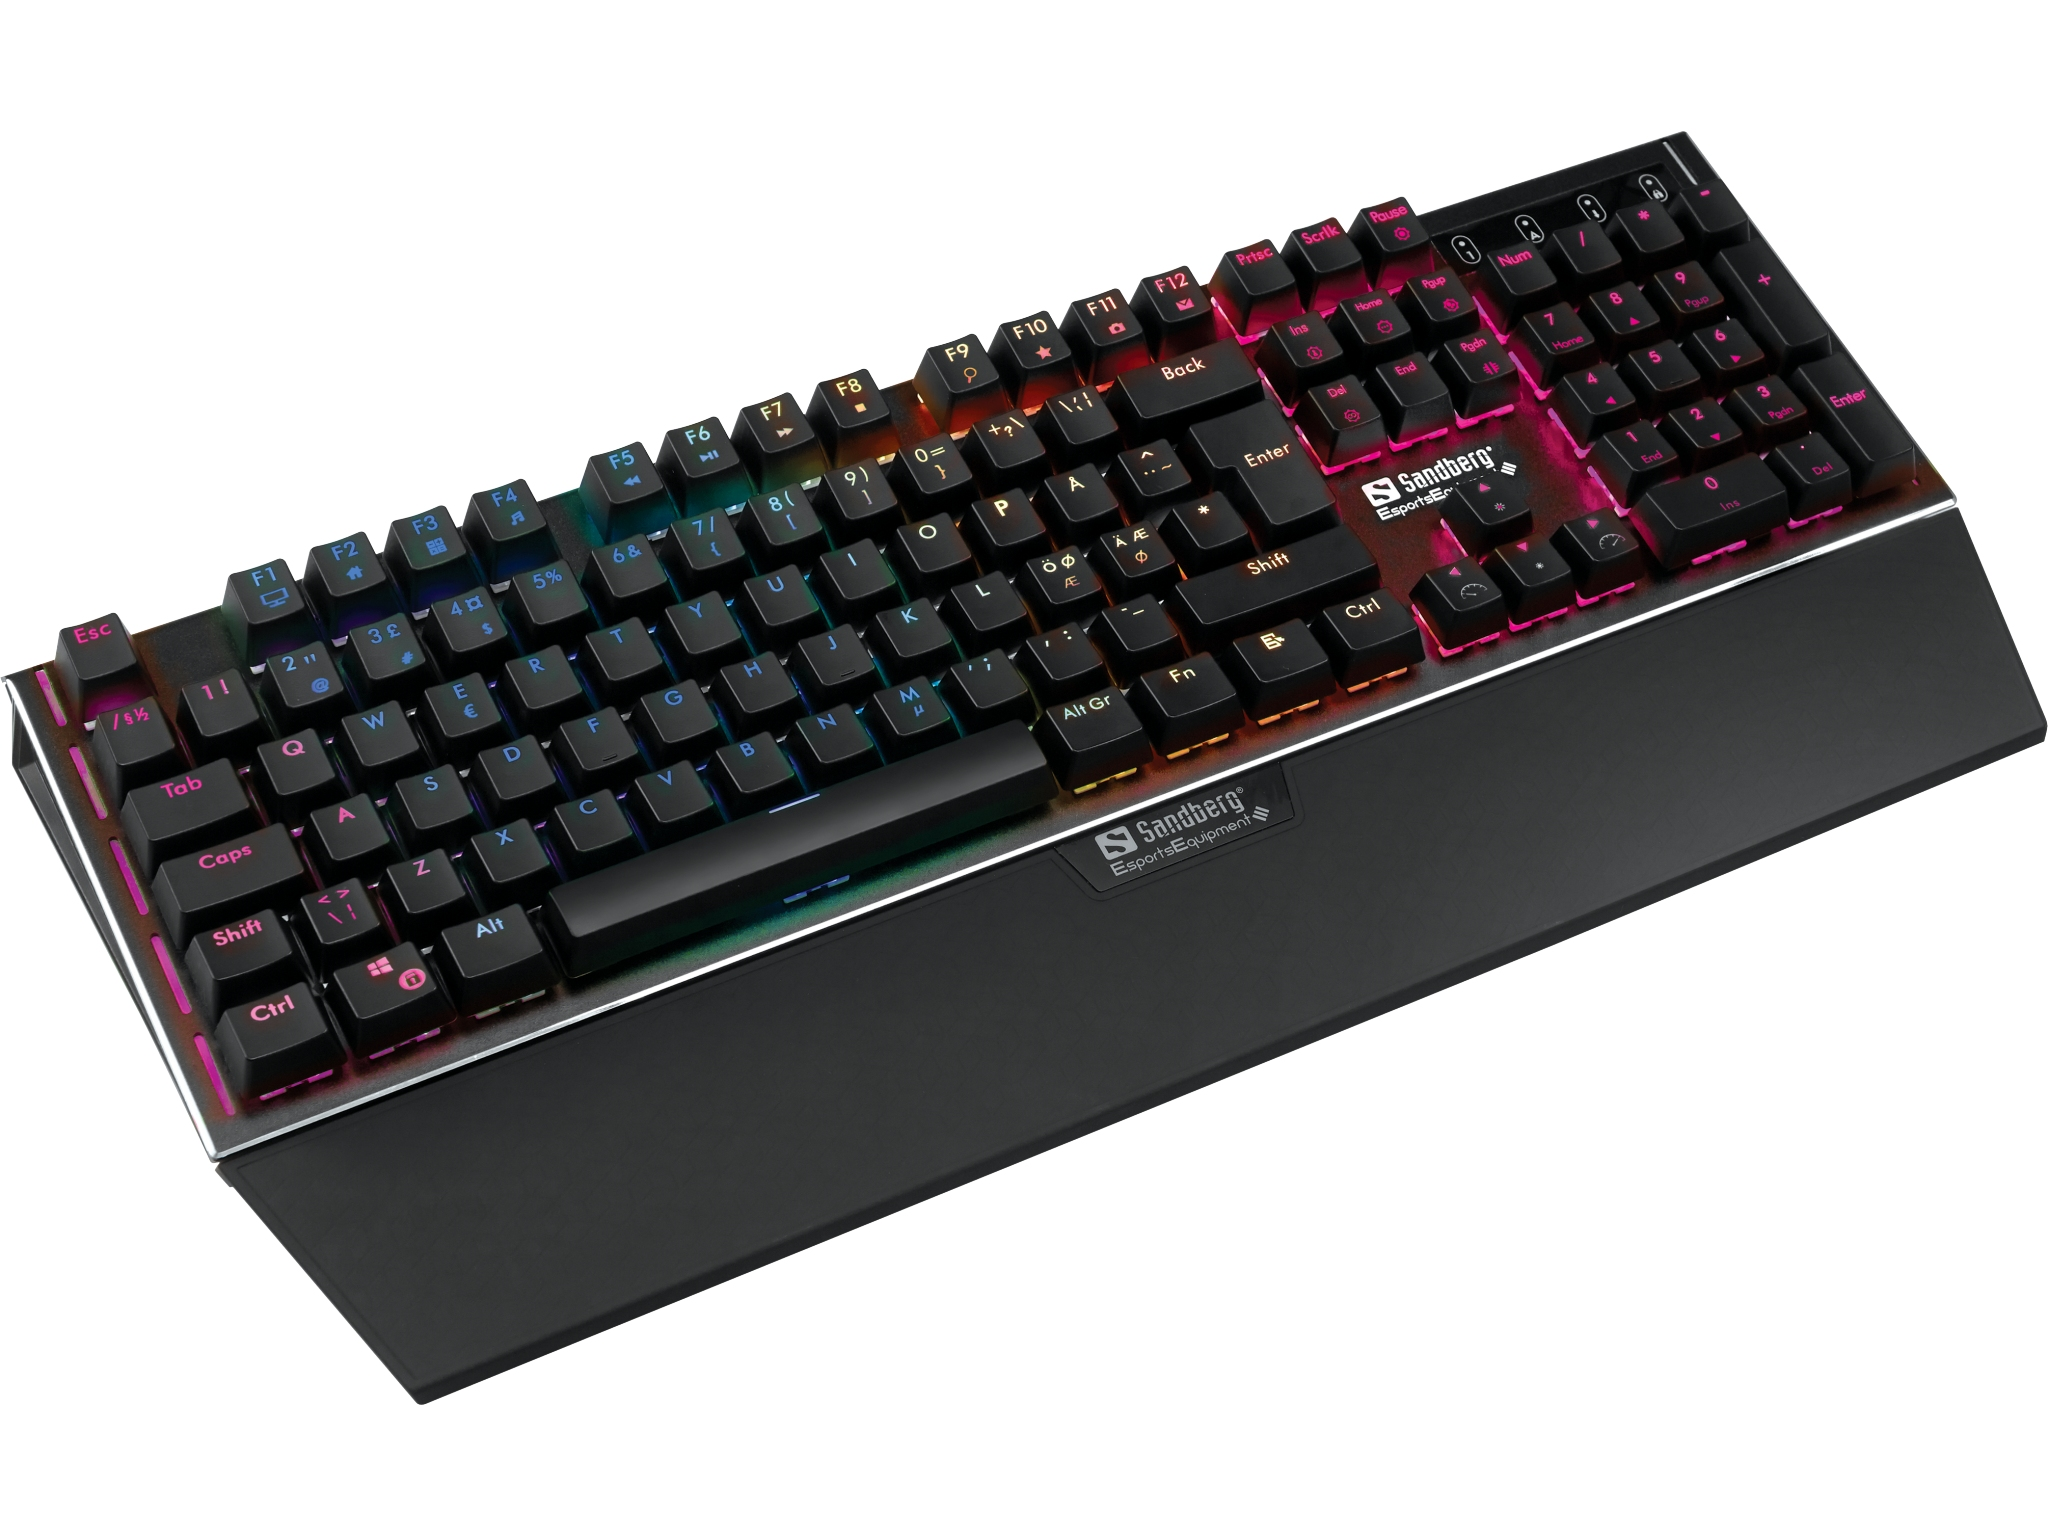 FireStorm Mech Keyboard Nordic